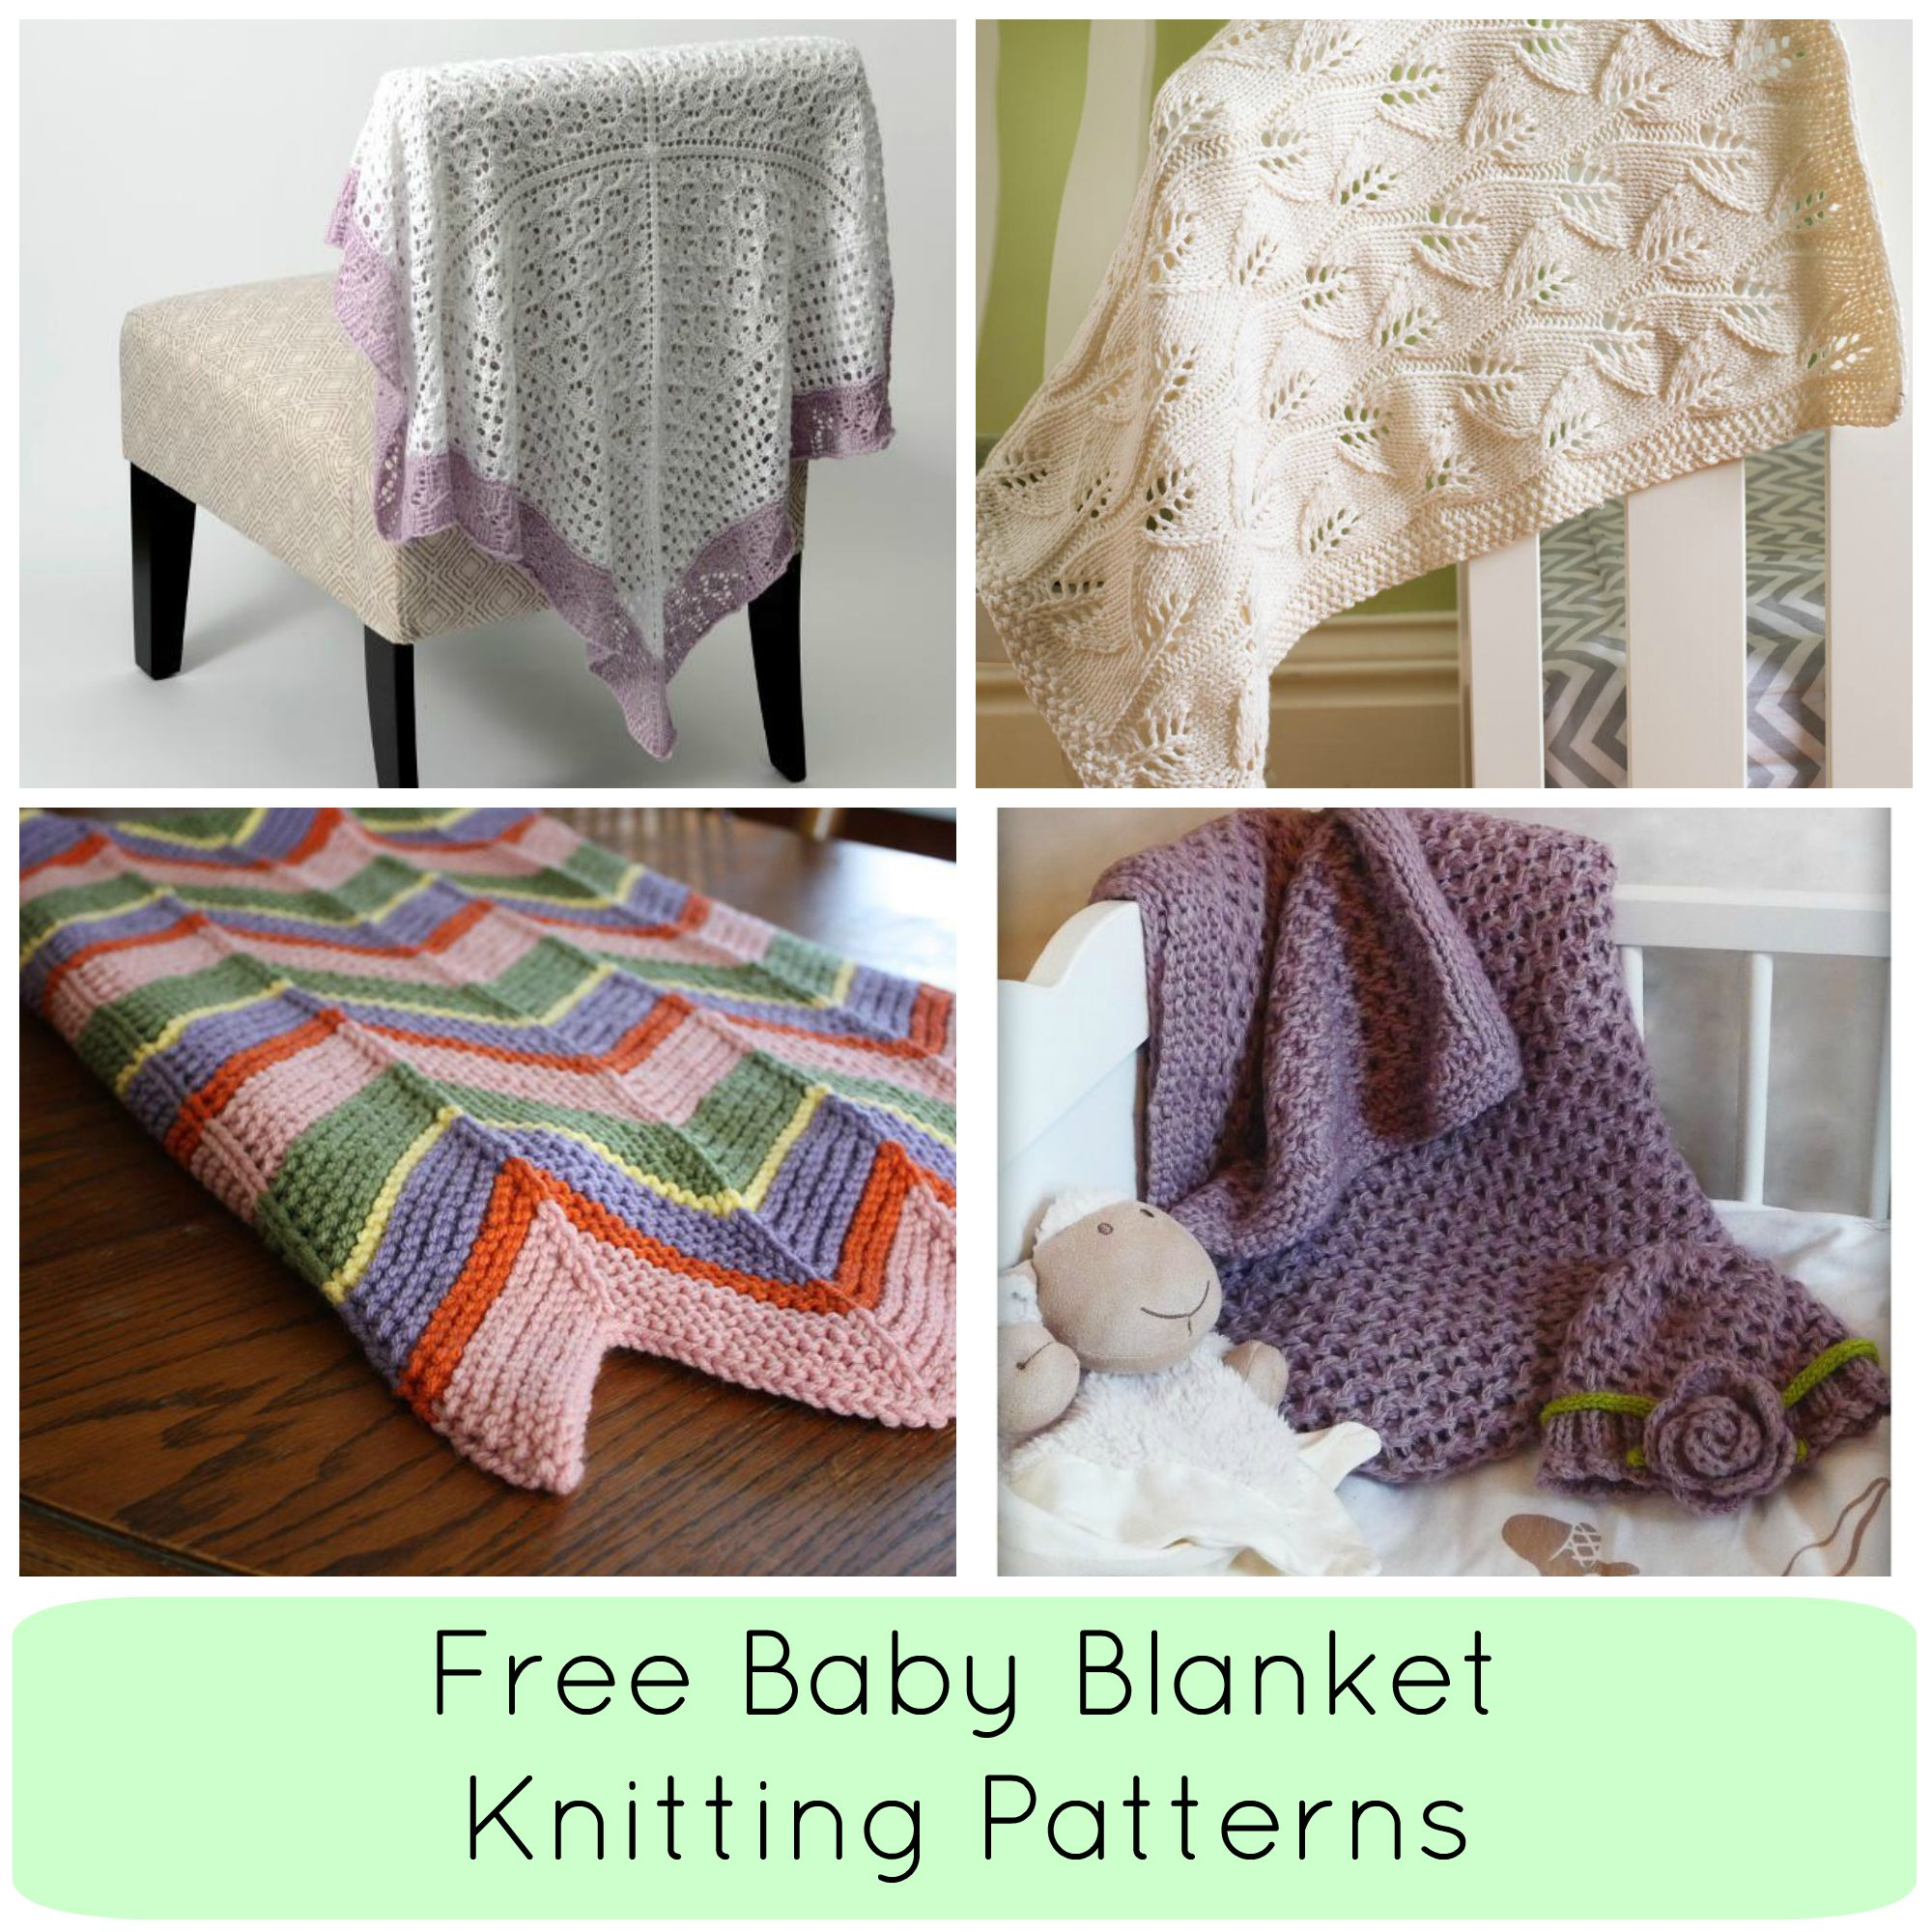 Free Easy Baby Blanket Knitting Patterns For Beginners 8 Free Ba Blanket Knitting Patterns Craftsy